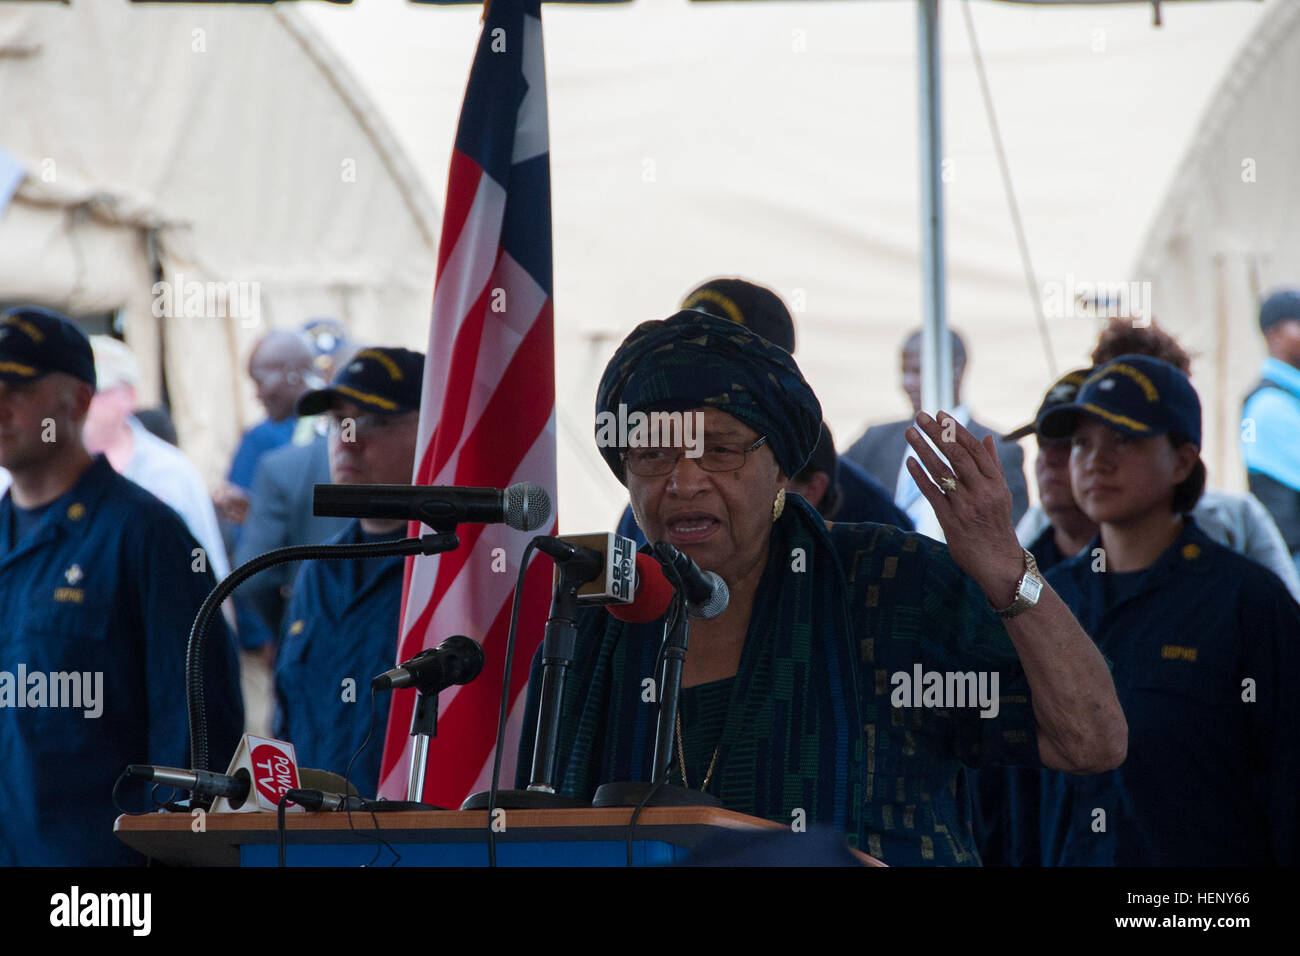 Ellen Johnson Sirleaf, the president of Liberia, speaks at the opening ceremony of the Monrovia Medical Unit Nov. - Stock Image